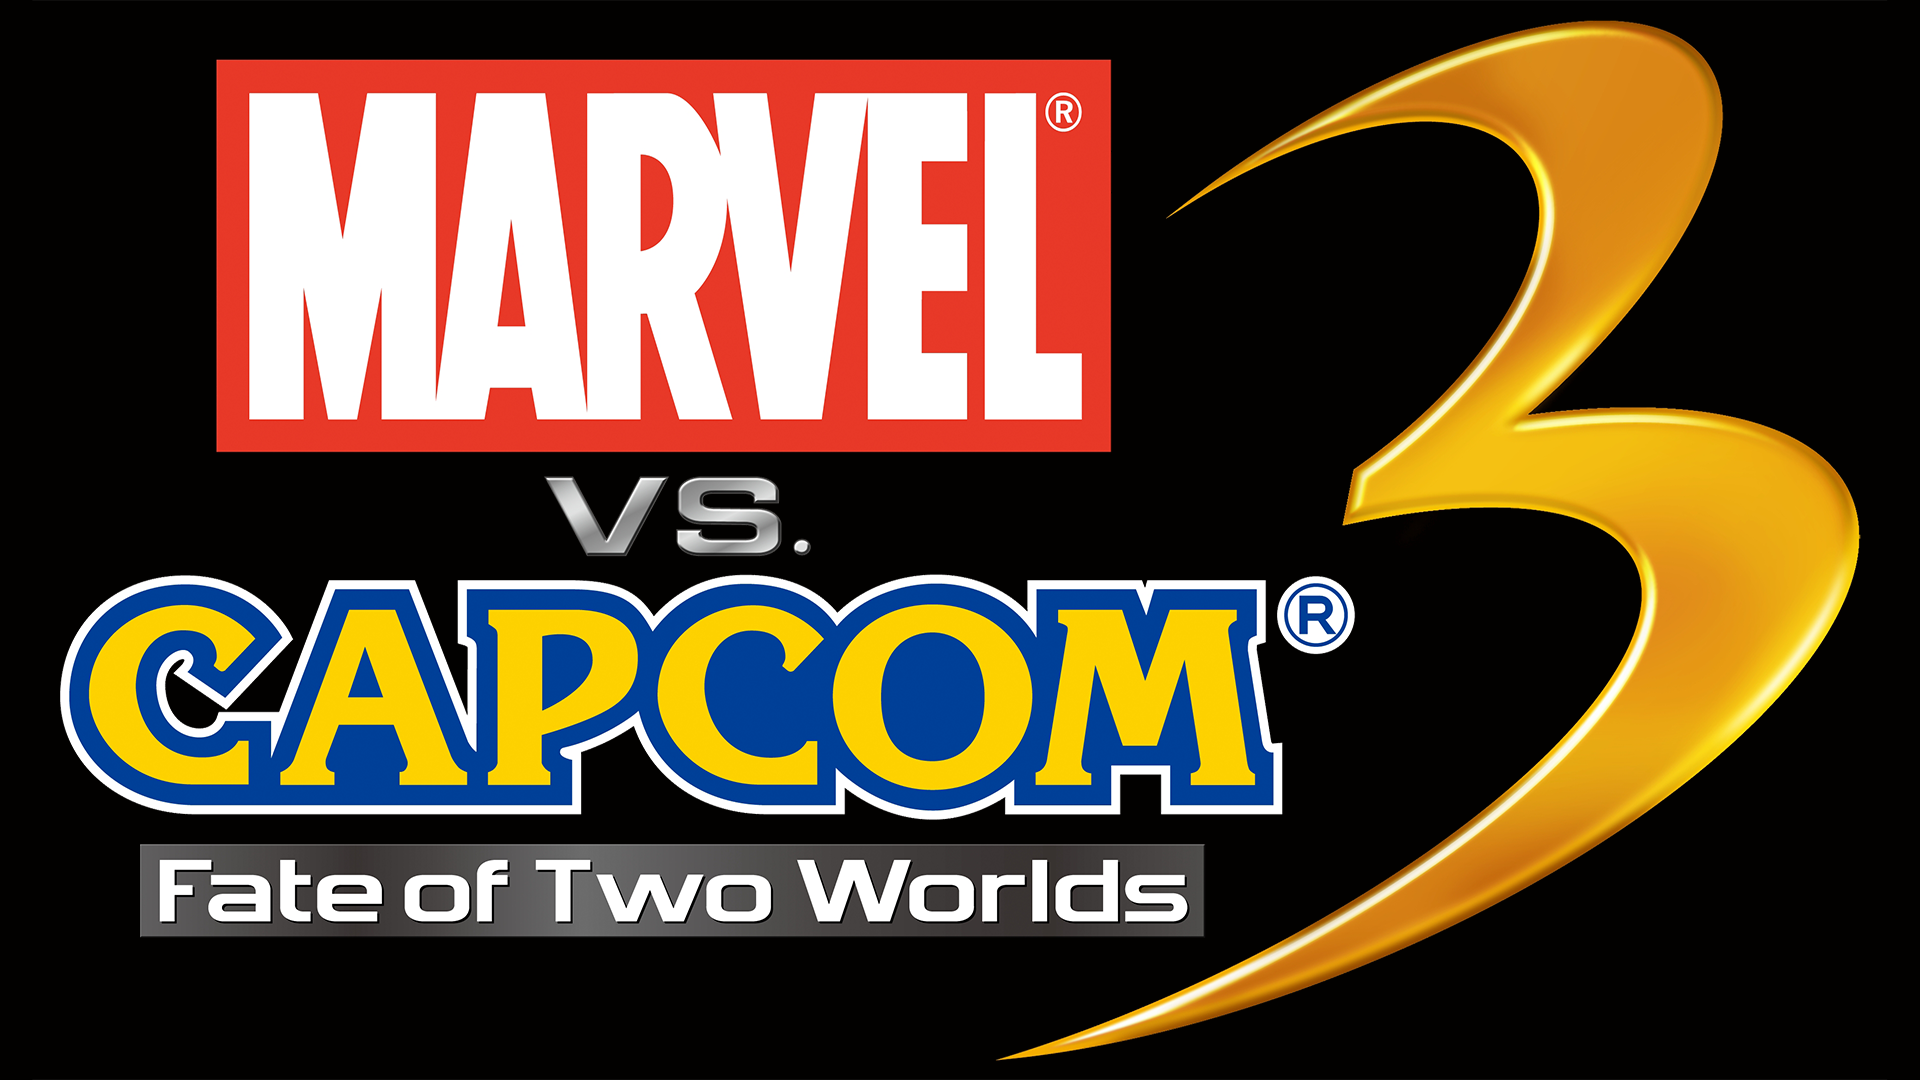 Marvel vs. Capcom 3: Fate of Two Worlds Logo